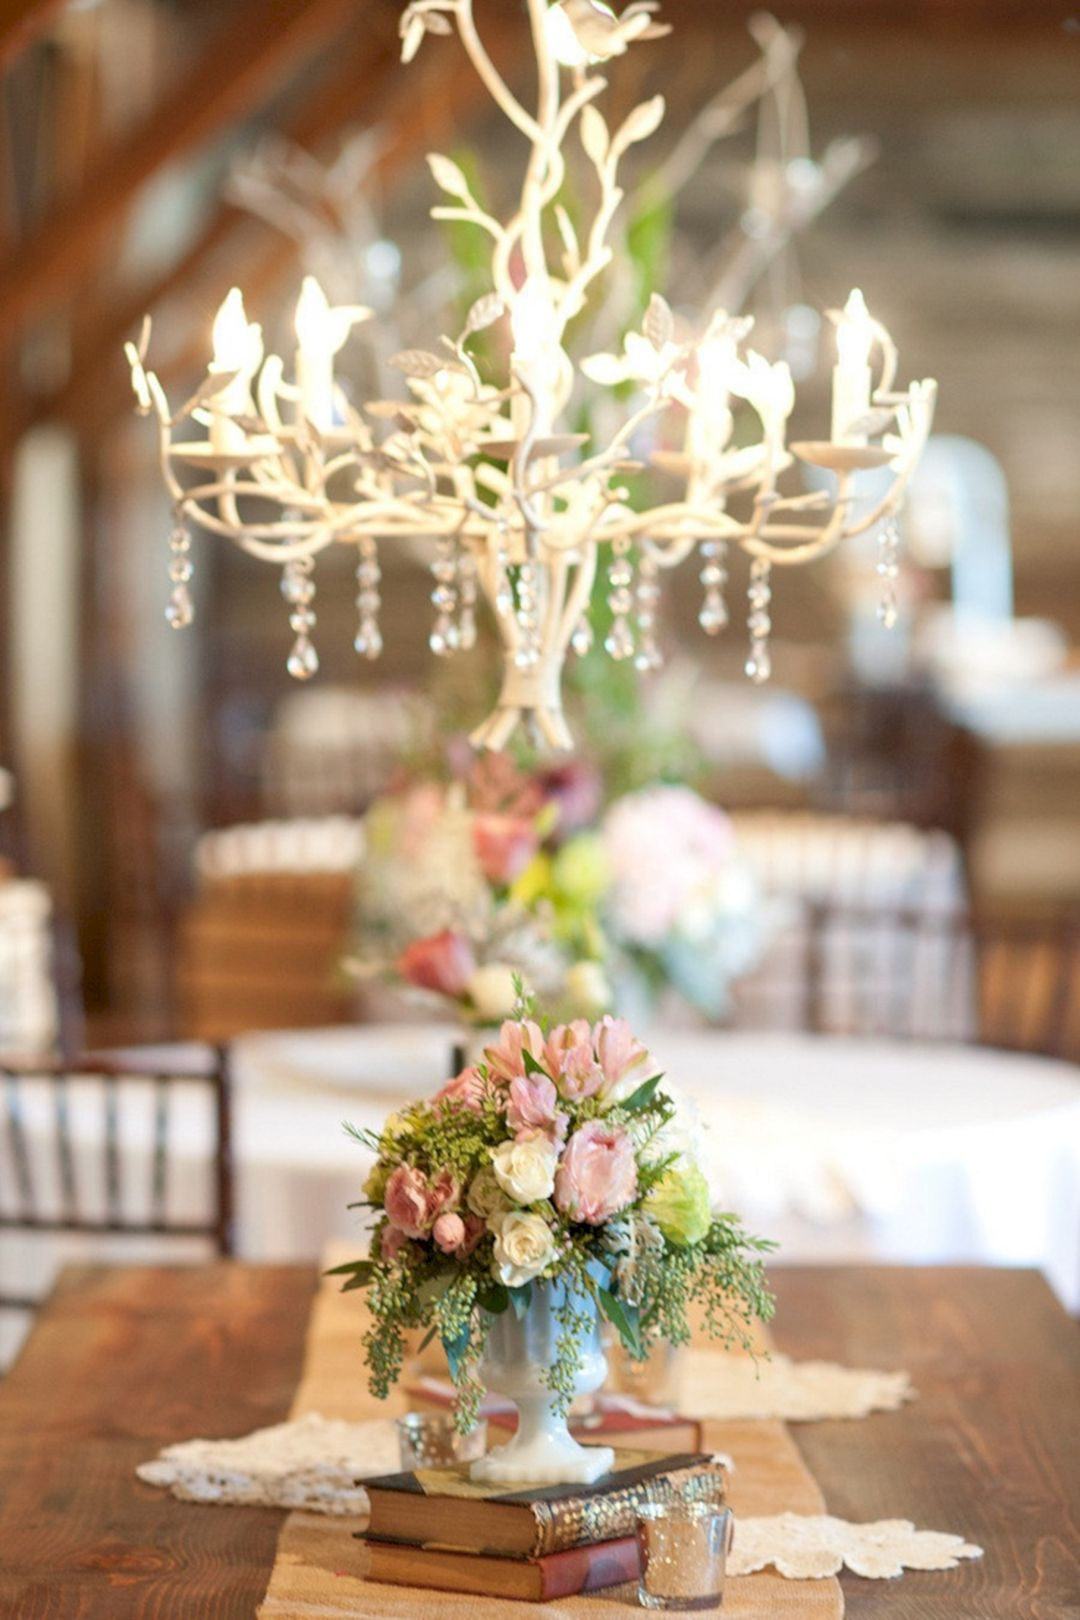 Country wedding decoration ideas   Most Romantic Rustic Wedding Decor Ideas That You Never Seen